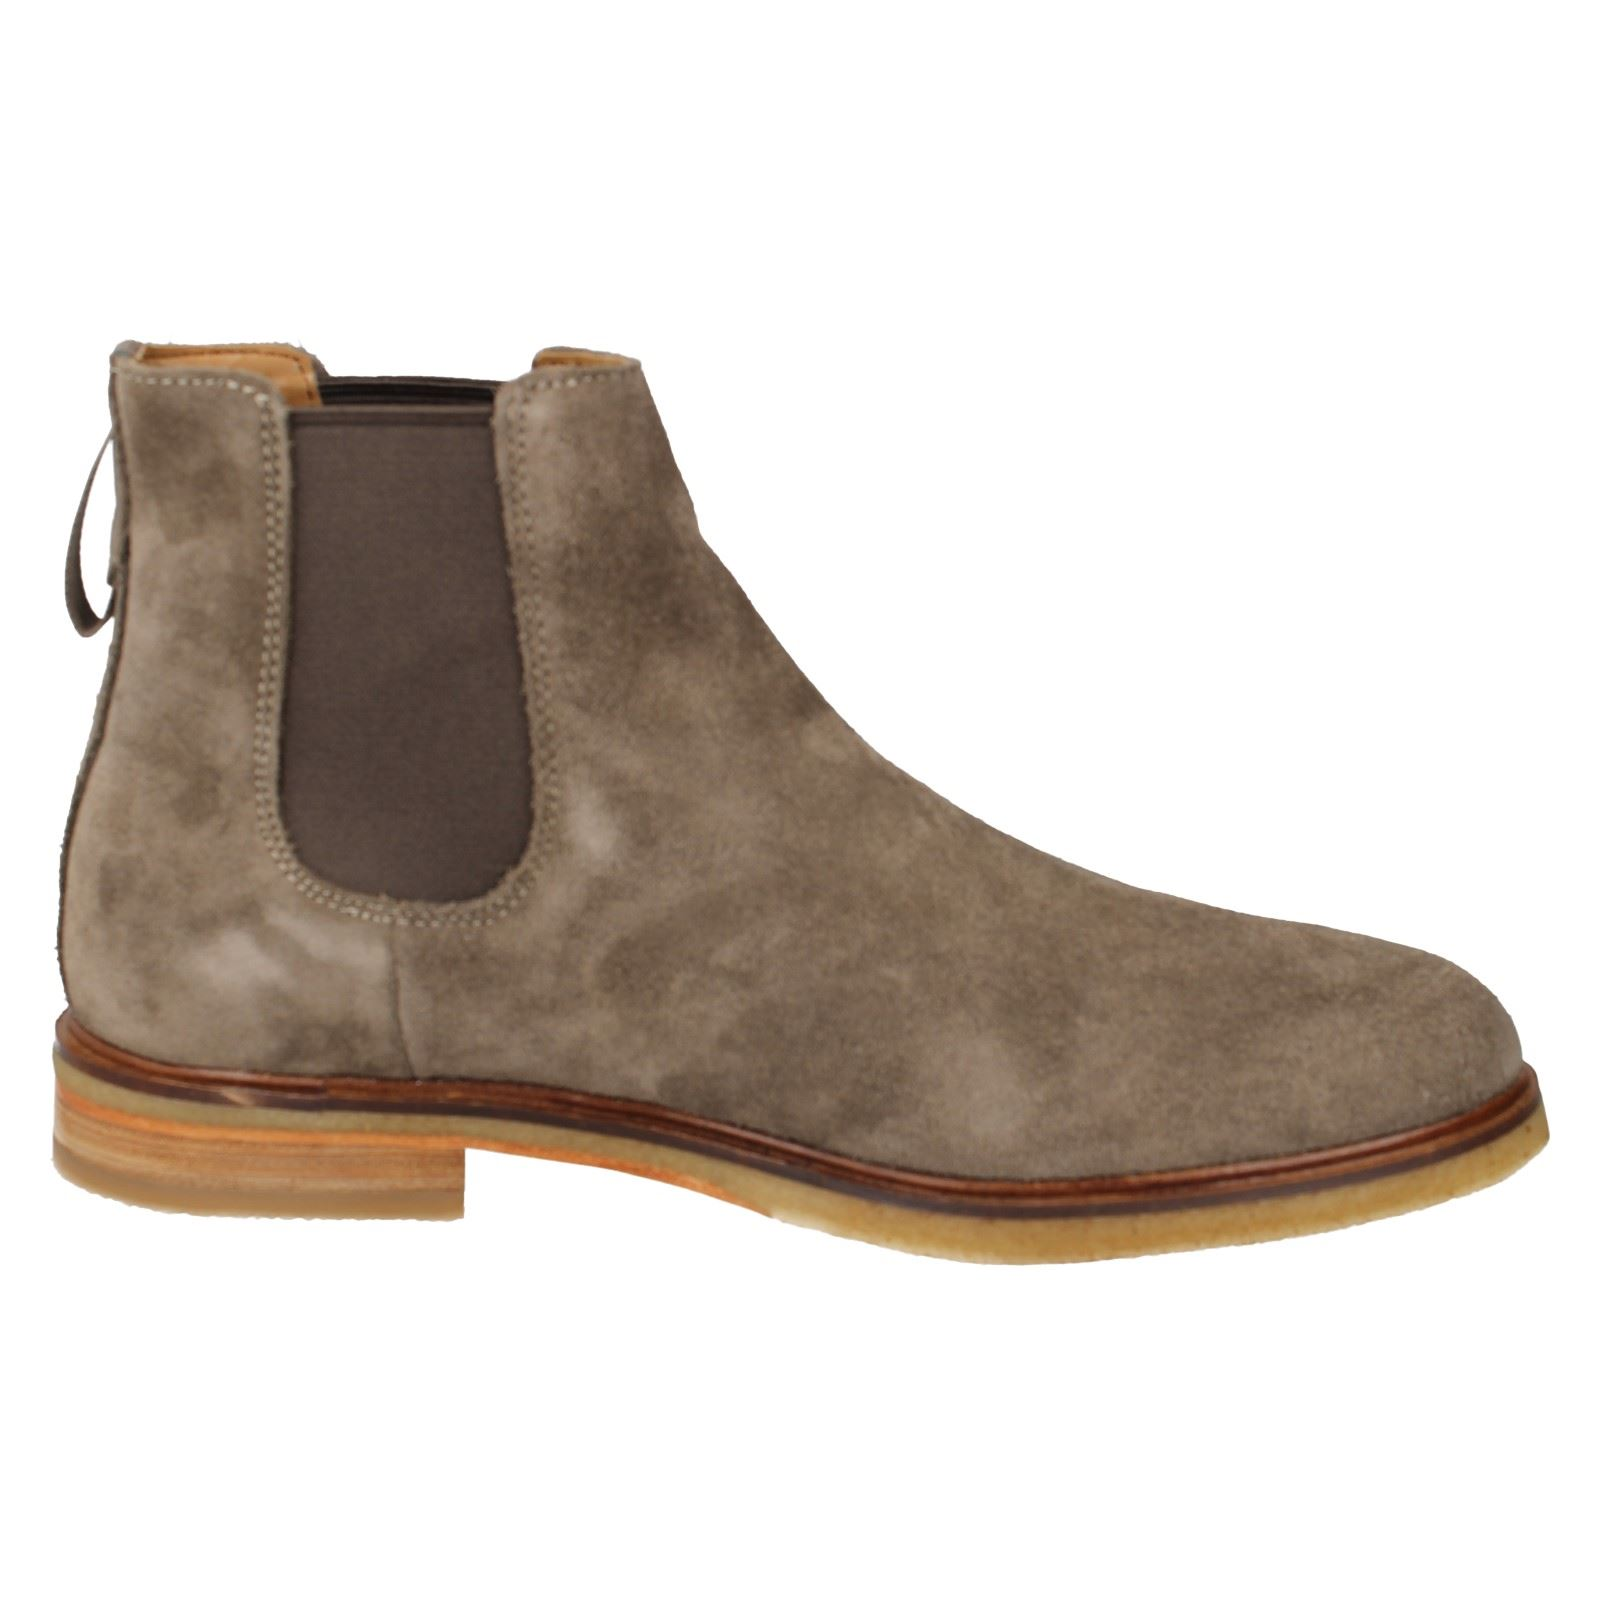 Hombres Clarks Chelsea Ankle Pull On botas Clarkdale Clarkdale Clarkdale Gobi 482c5e